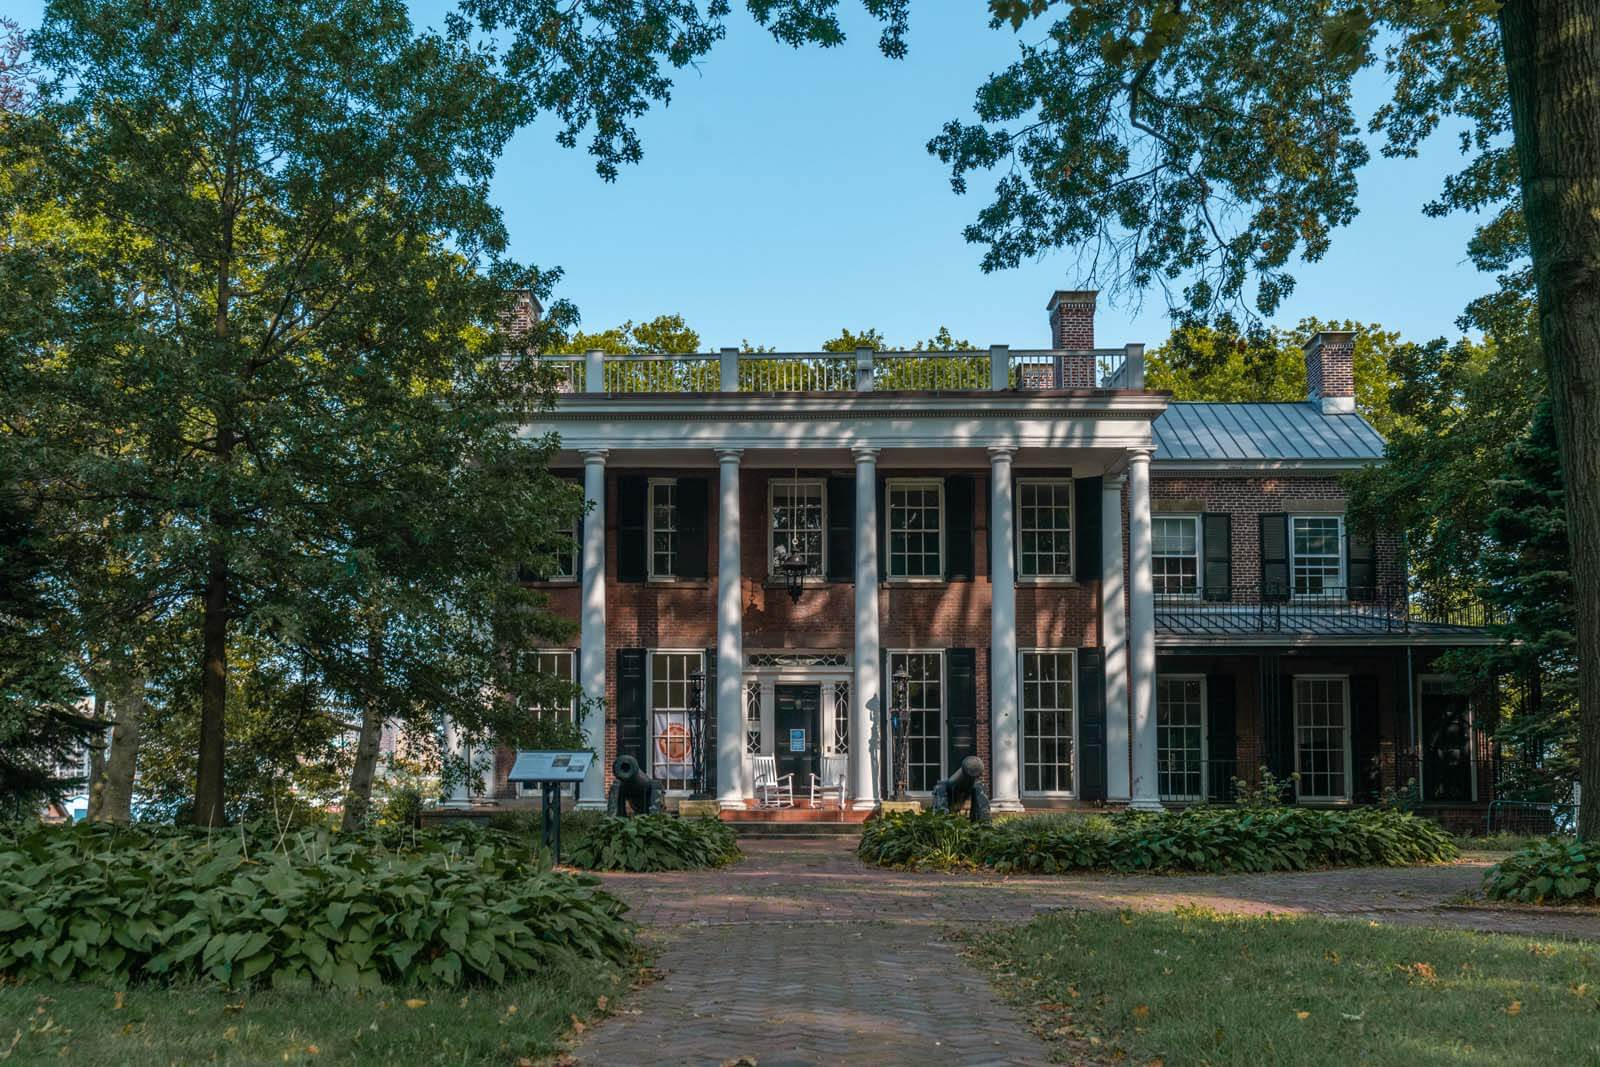 historic high ranking officer home on Governors Island in NYC